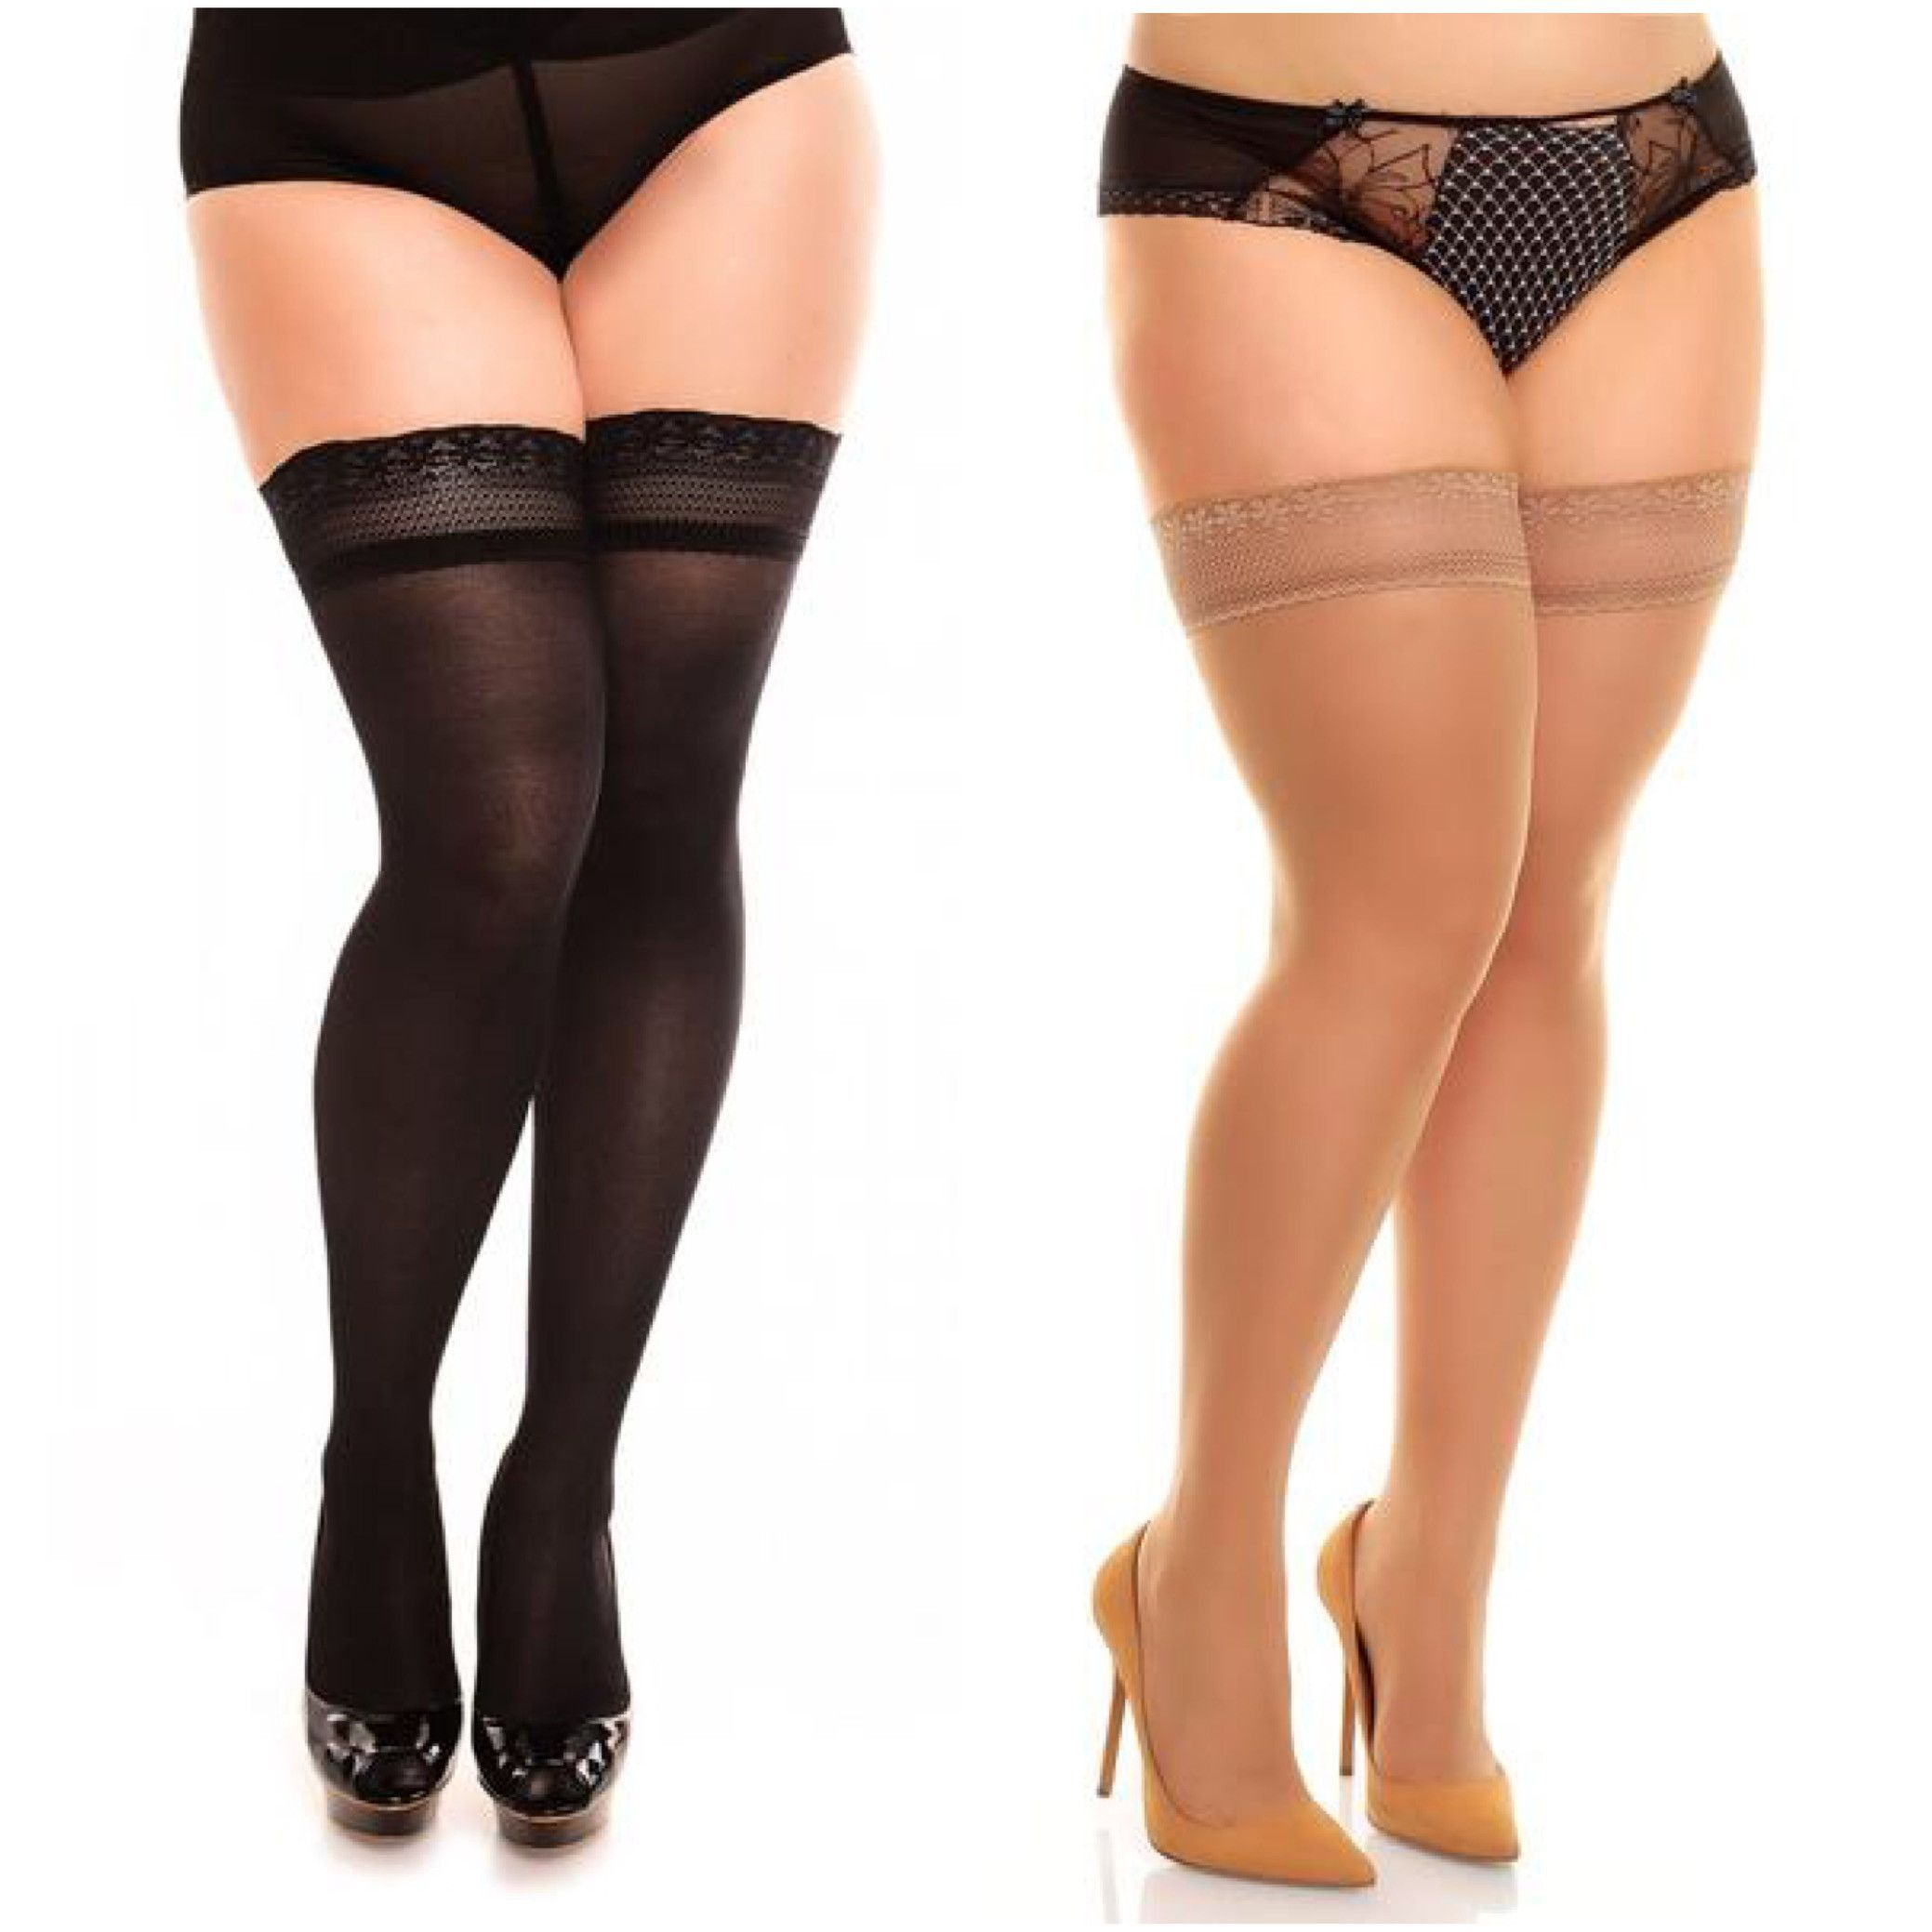 cdc6c017677 Vital Minimal Lace Thigh Highs. Vital Minimal Lace thigh highs are semi  opaque with 40